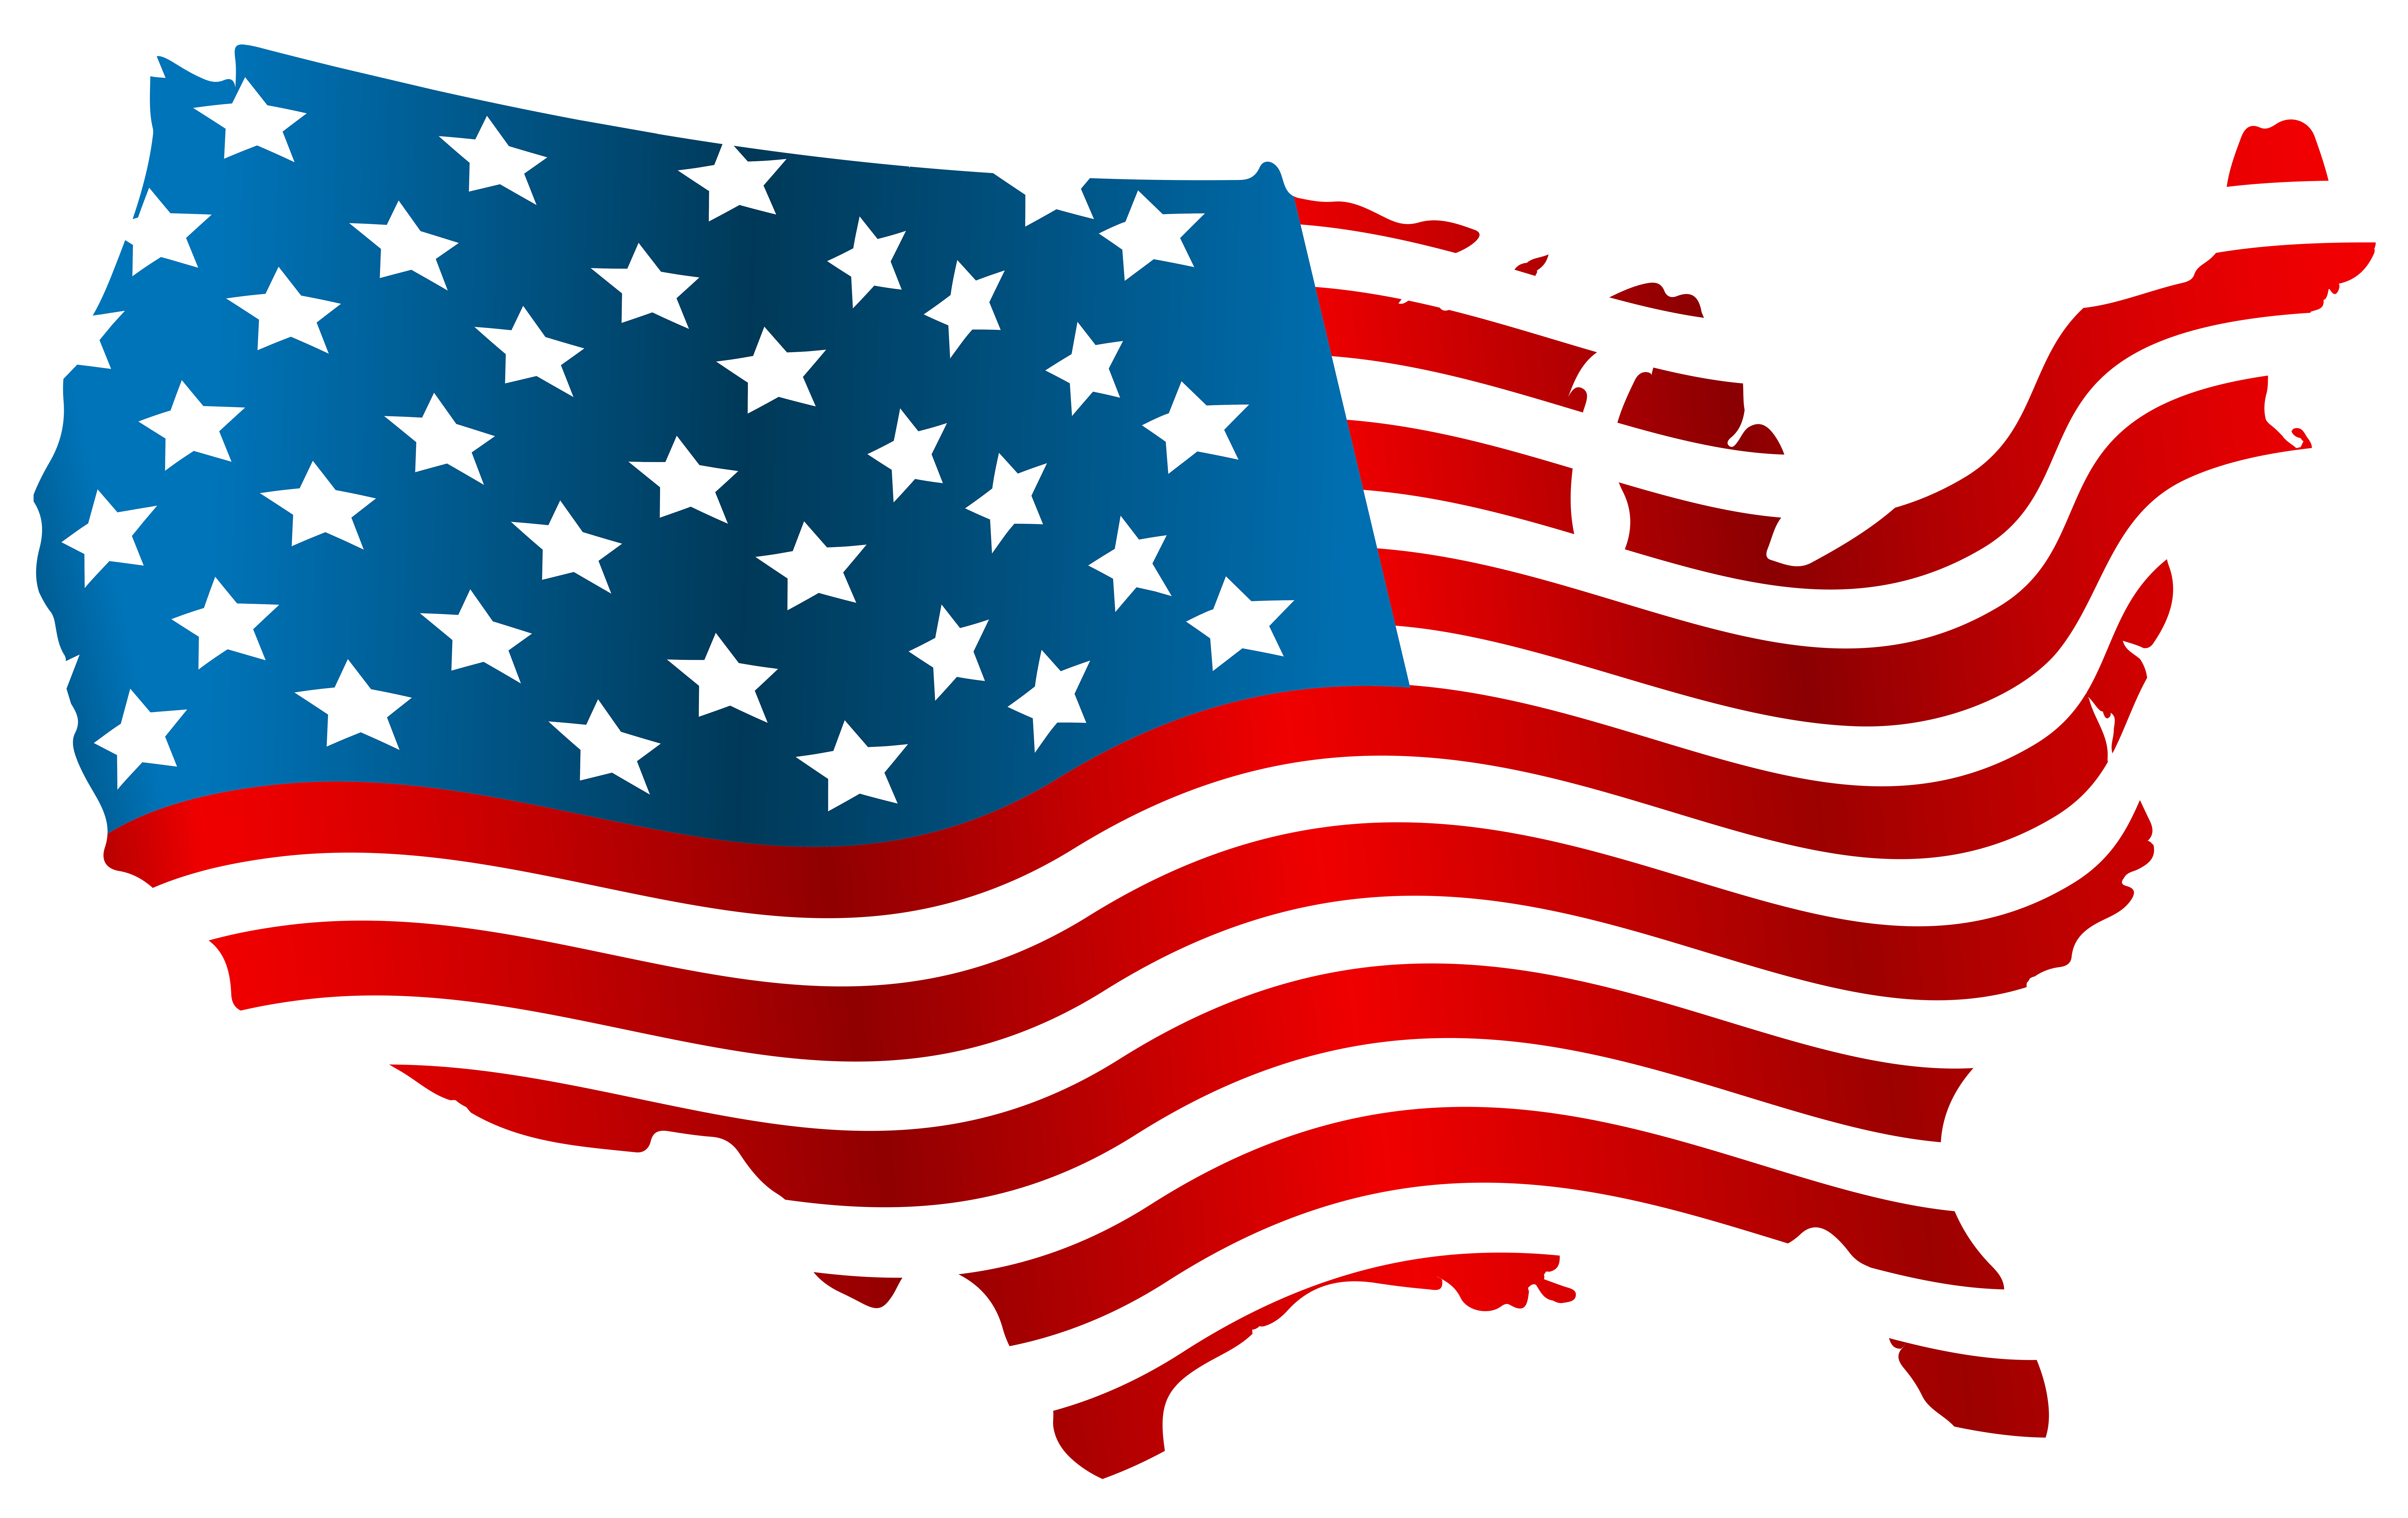 United States Of America Flag Png - USA Flag Map PNG Clip Art Image | Gallery Yopriceville - High ...